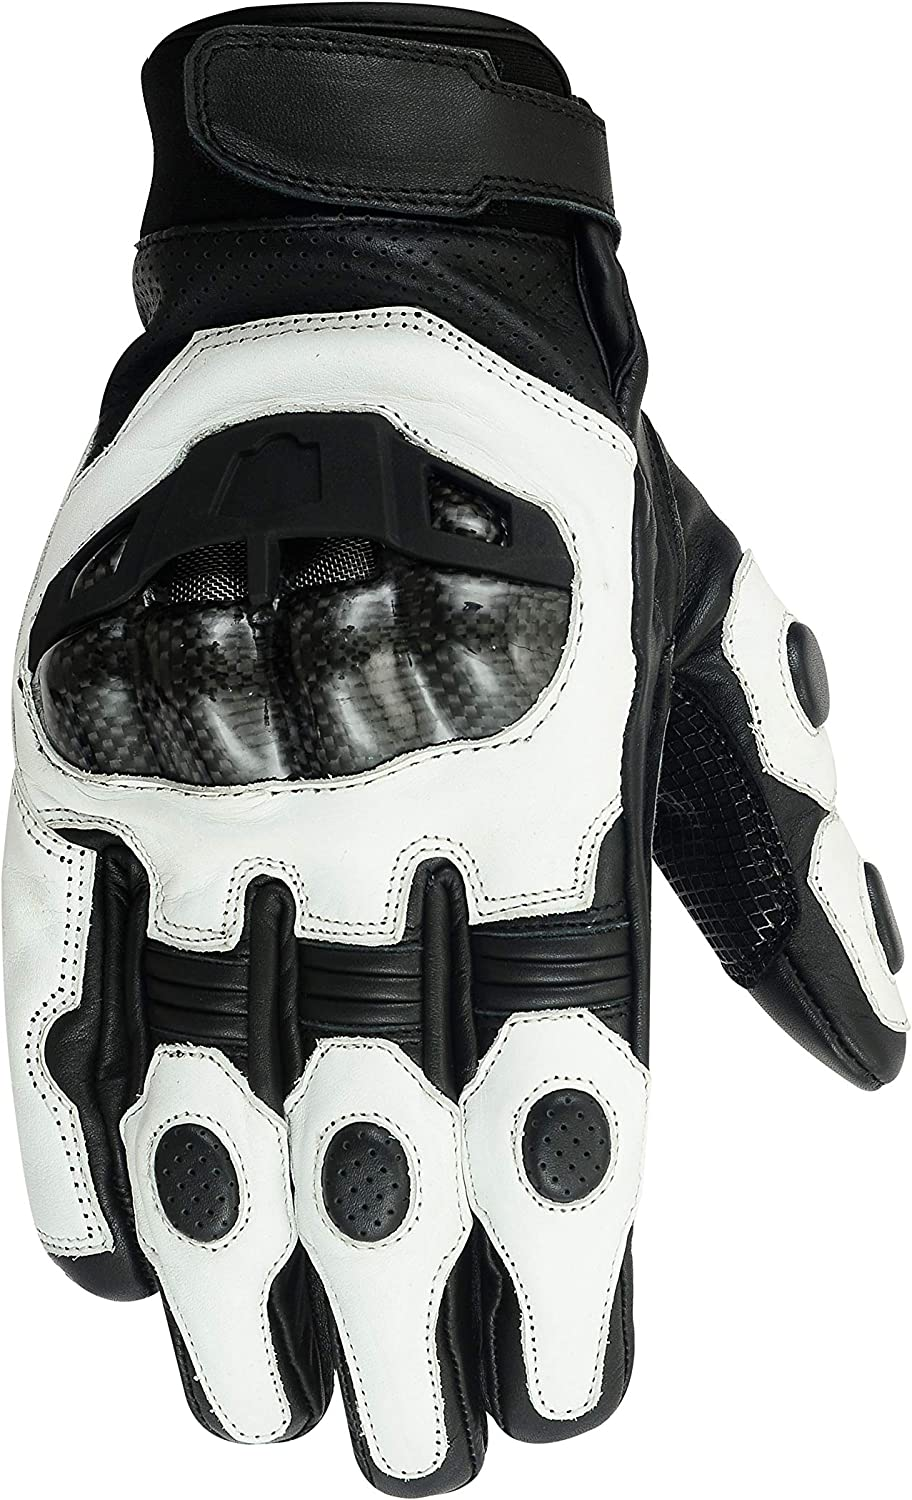 3 Colours Available Texpeed KP Mens Short Cuff Leather Motorcycle Gloves with Protection